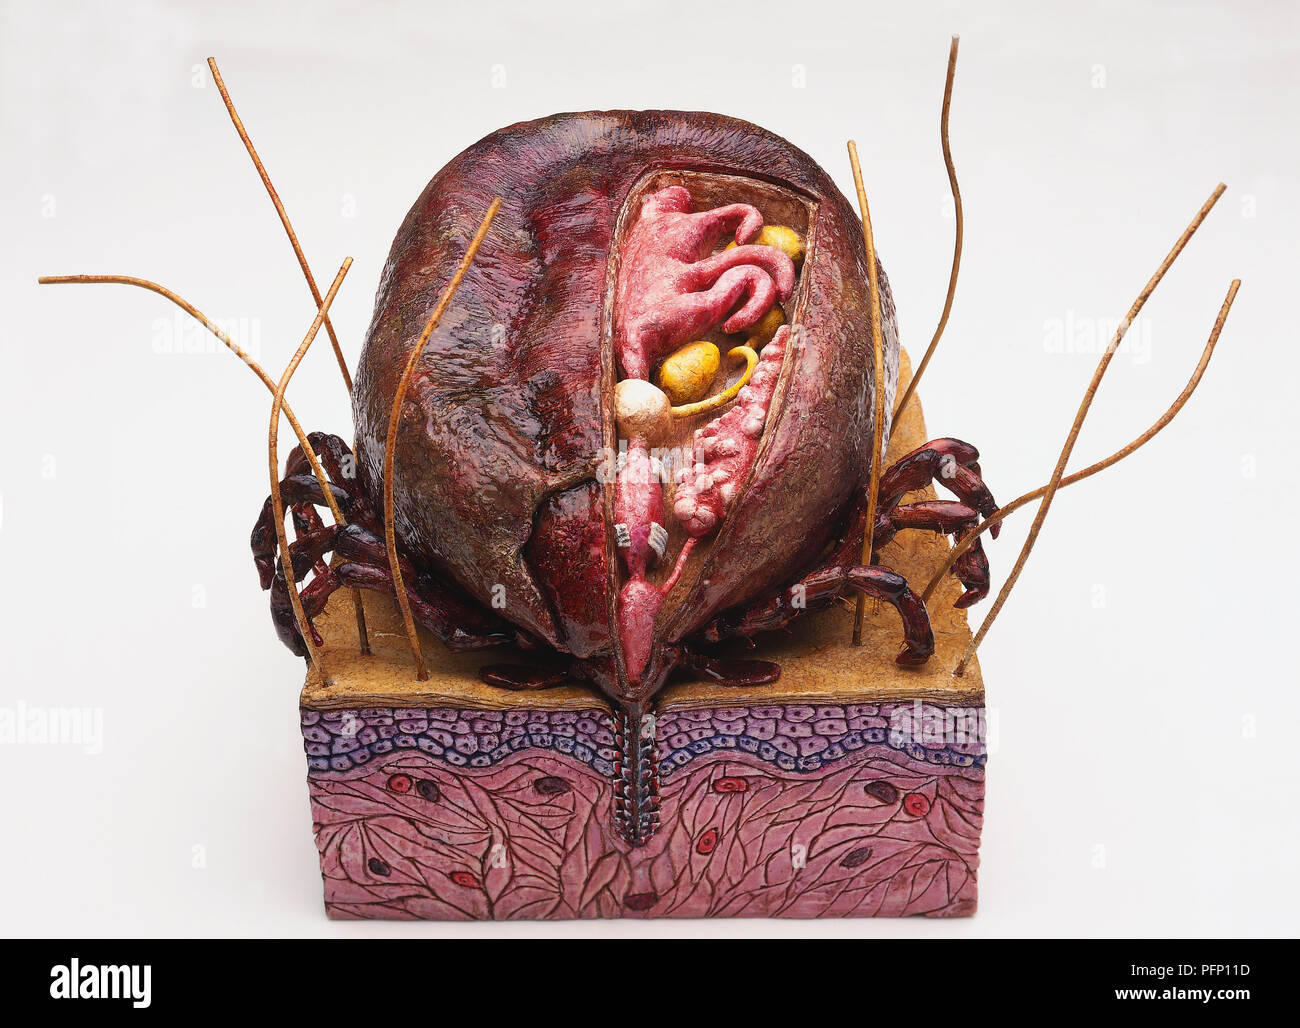 Model of Australian Paralysis Tick feeding on human blood, cross-section showing internal organs including pink midgut, yellow ovaries, white brain in centre, saliva glands and muscular pharynx sucking in blood. - Stock Image